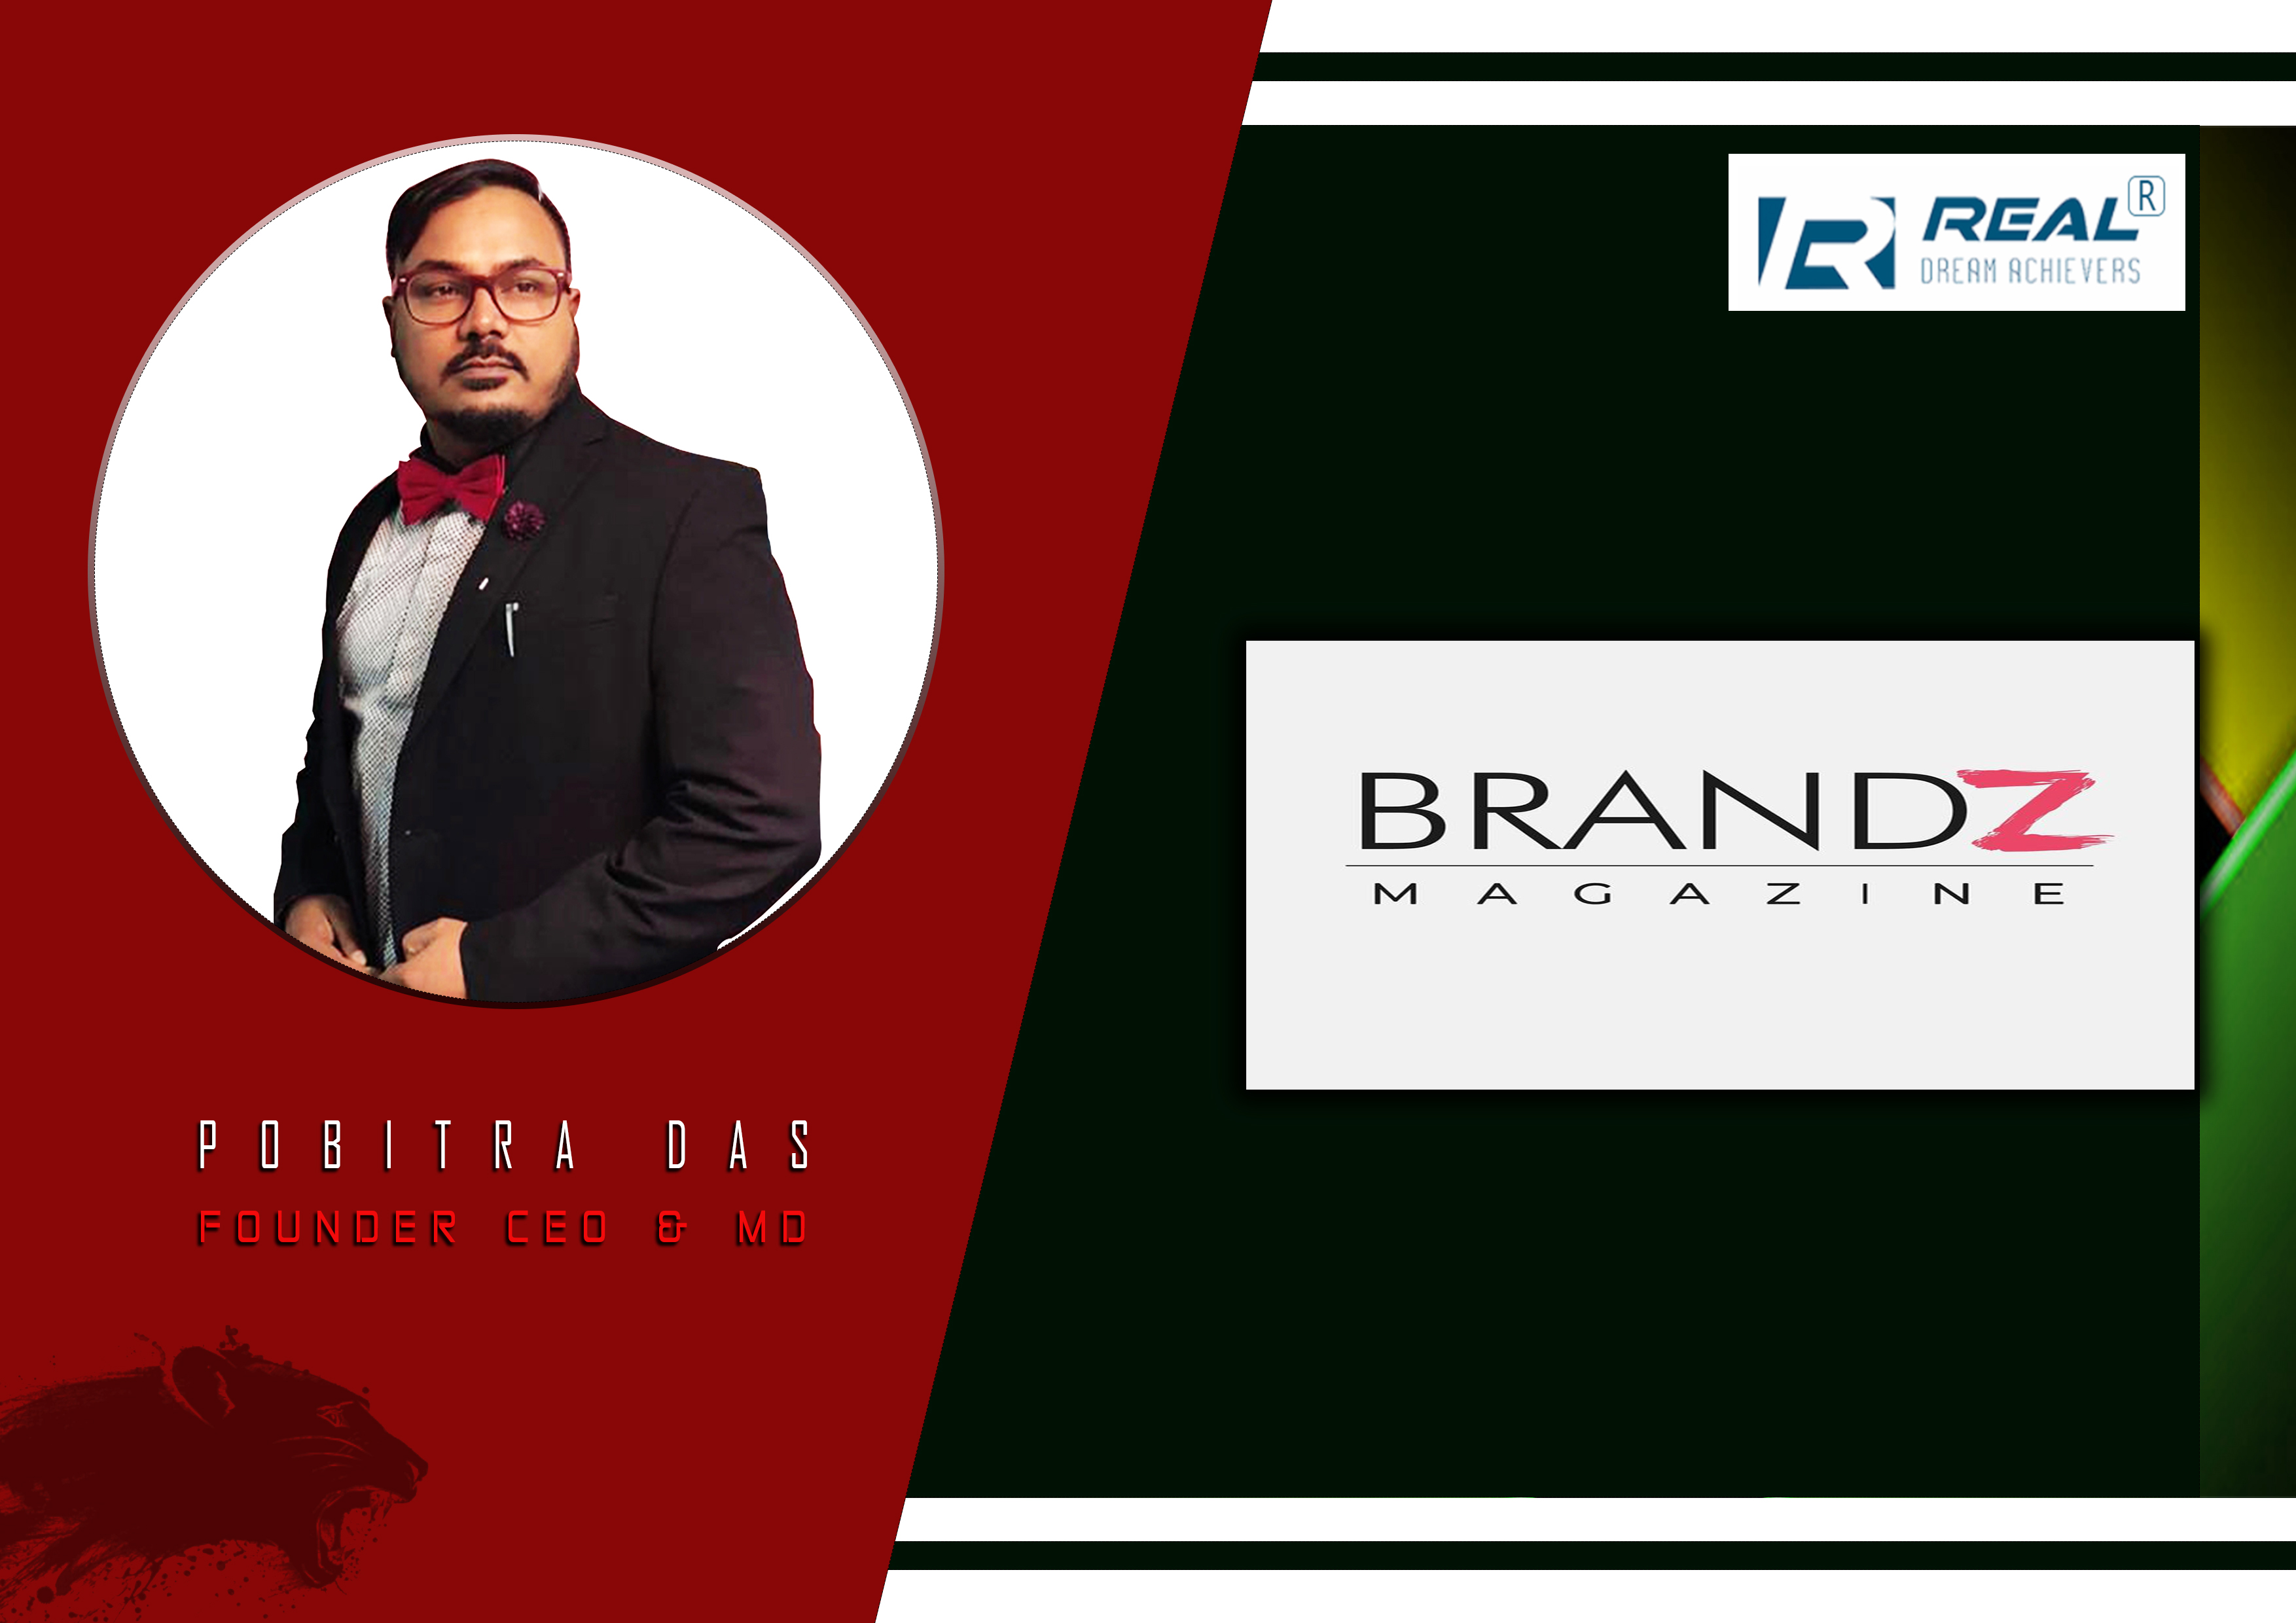 Brandz Magazine  Publish one page Article in our Company Profile and Founder,Ceo & Md Recognition